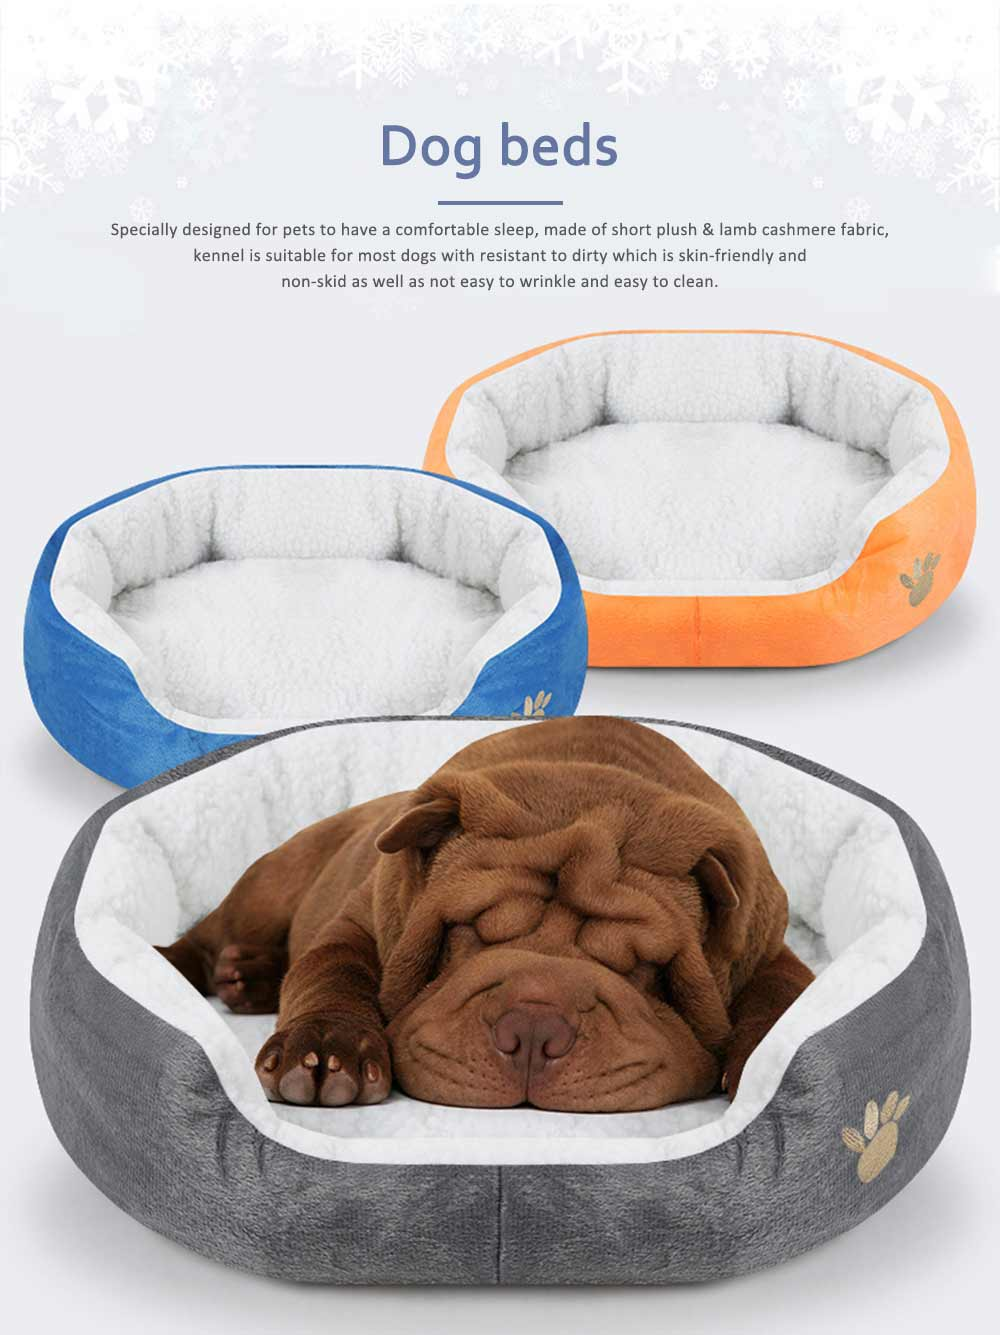 Kennel Ultra-soft Dog Beds, Plush & Lamb Cashmere Washable Cute Peg Beds 0